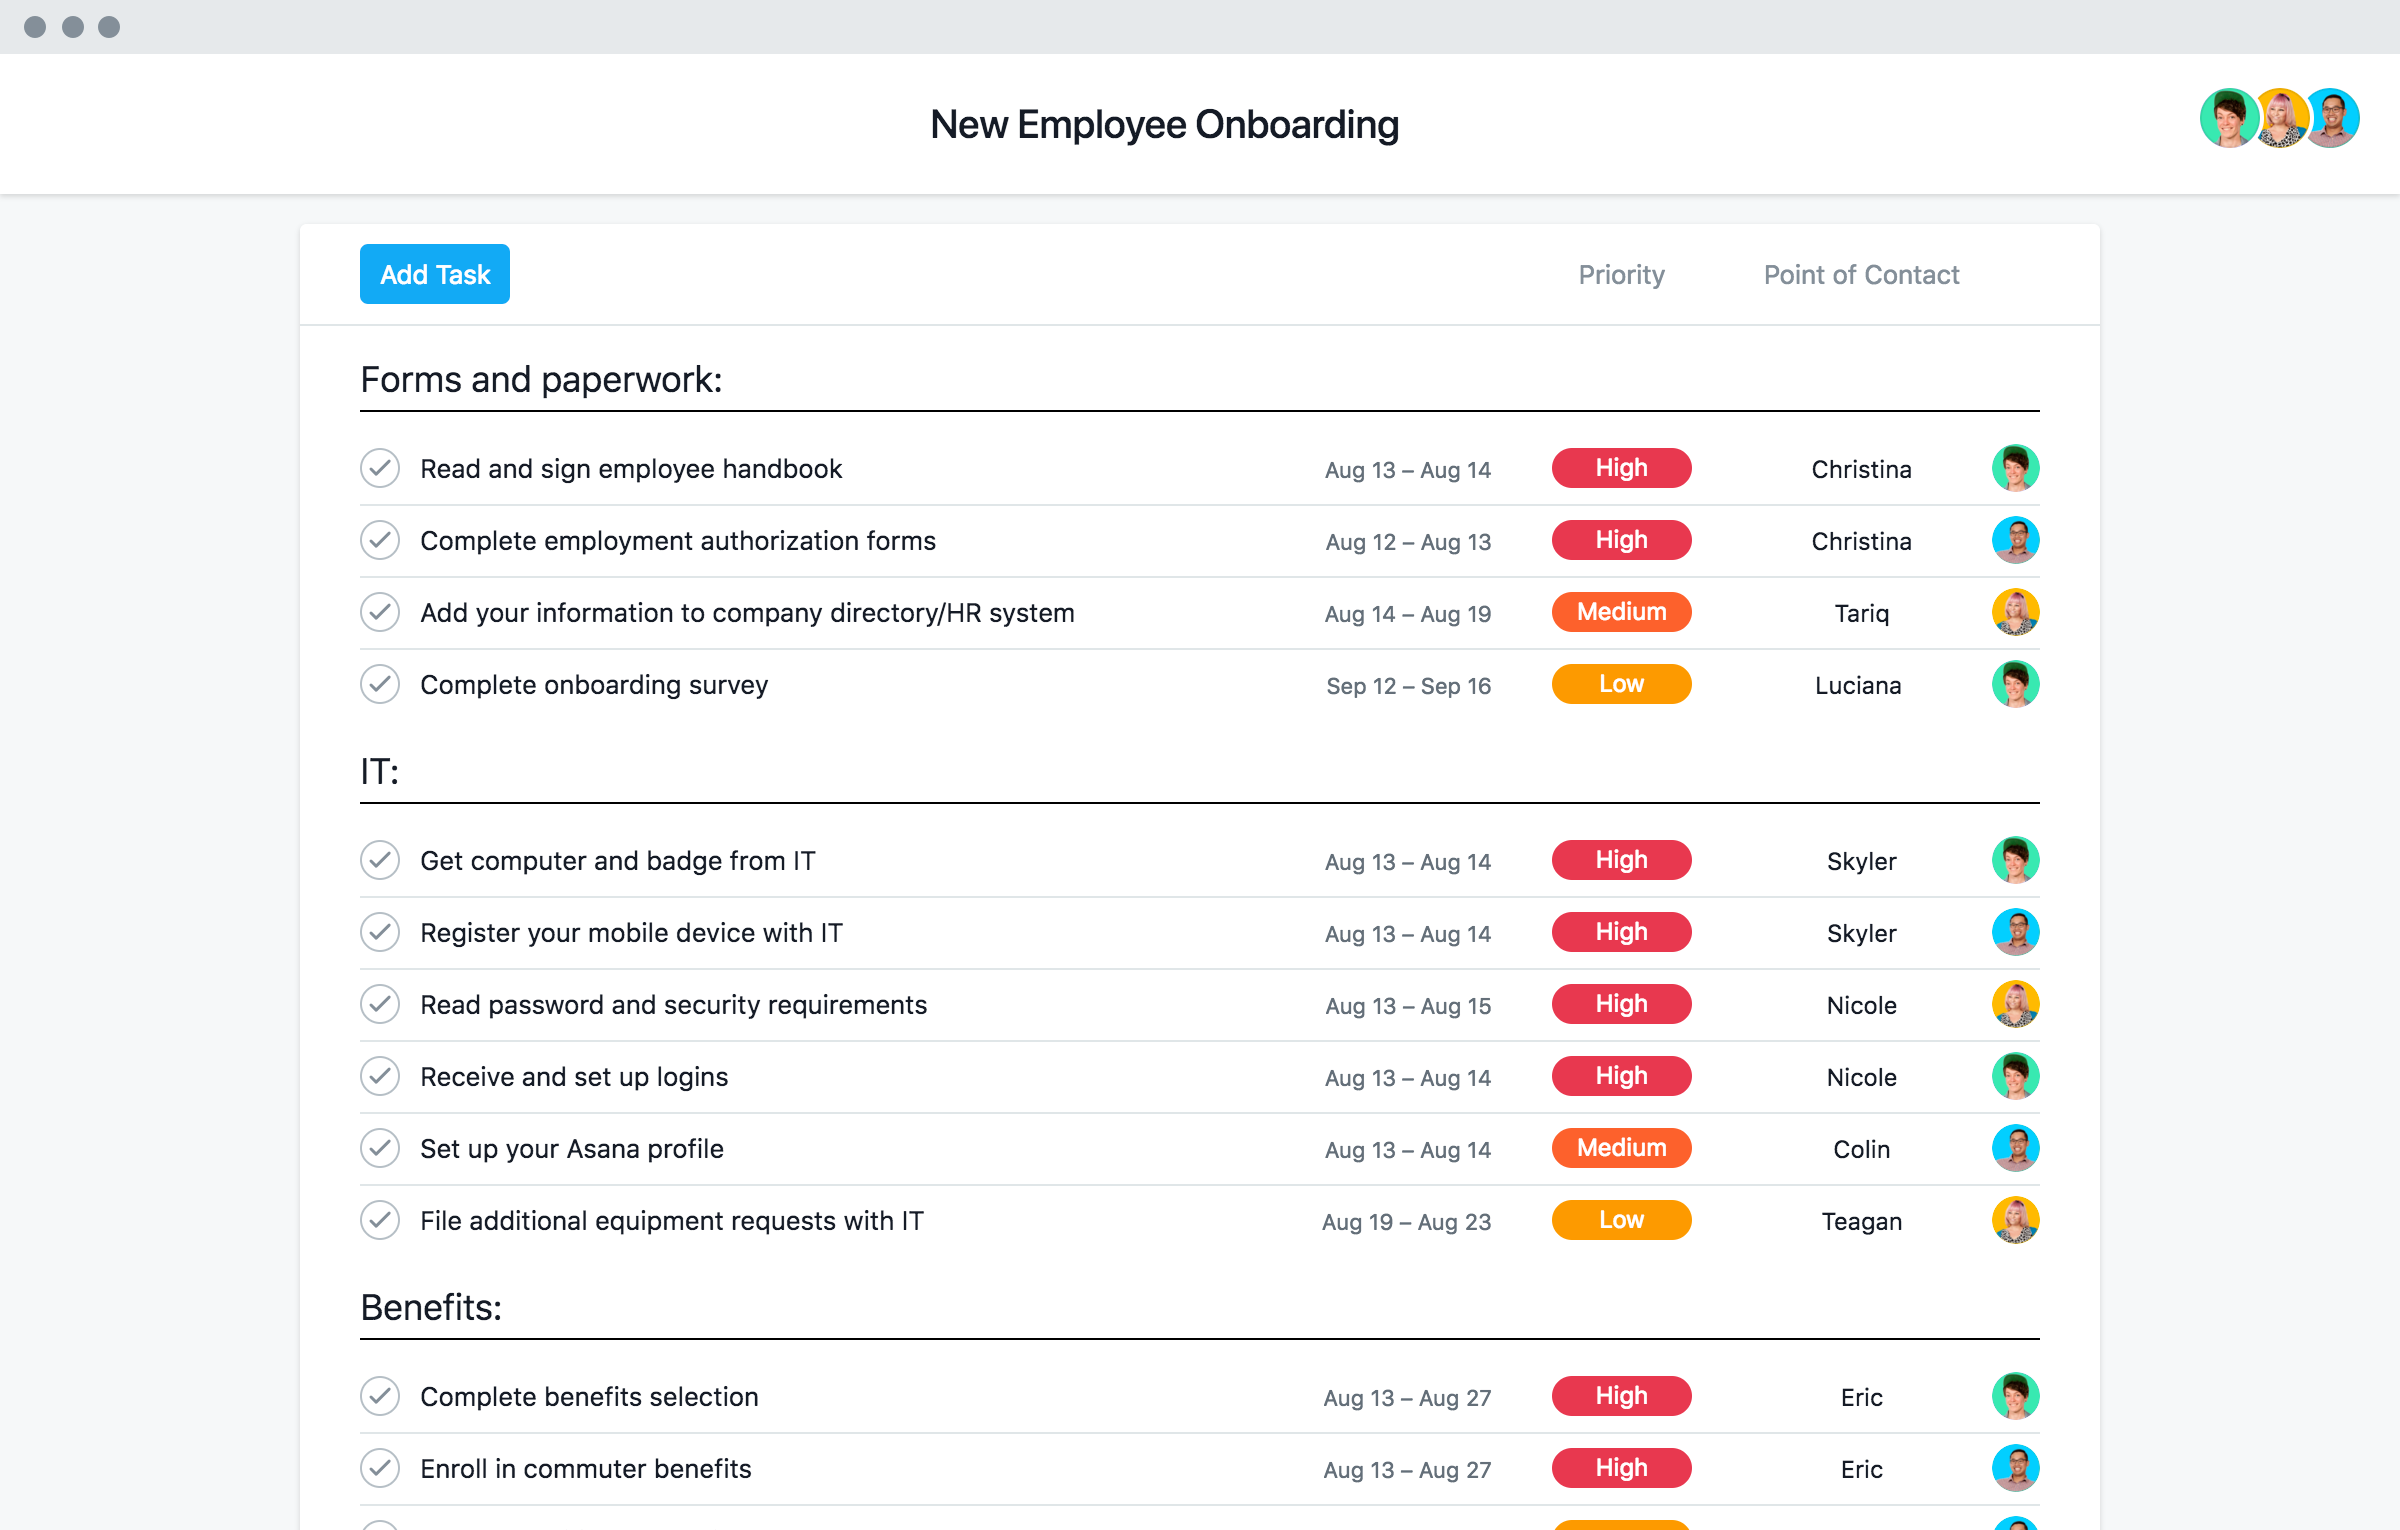 New Employee Onboarding Checklist Template